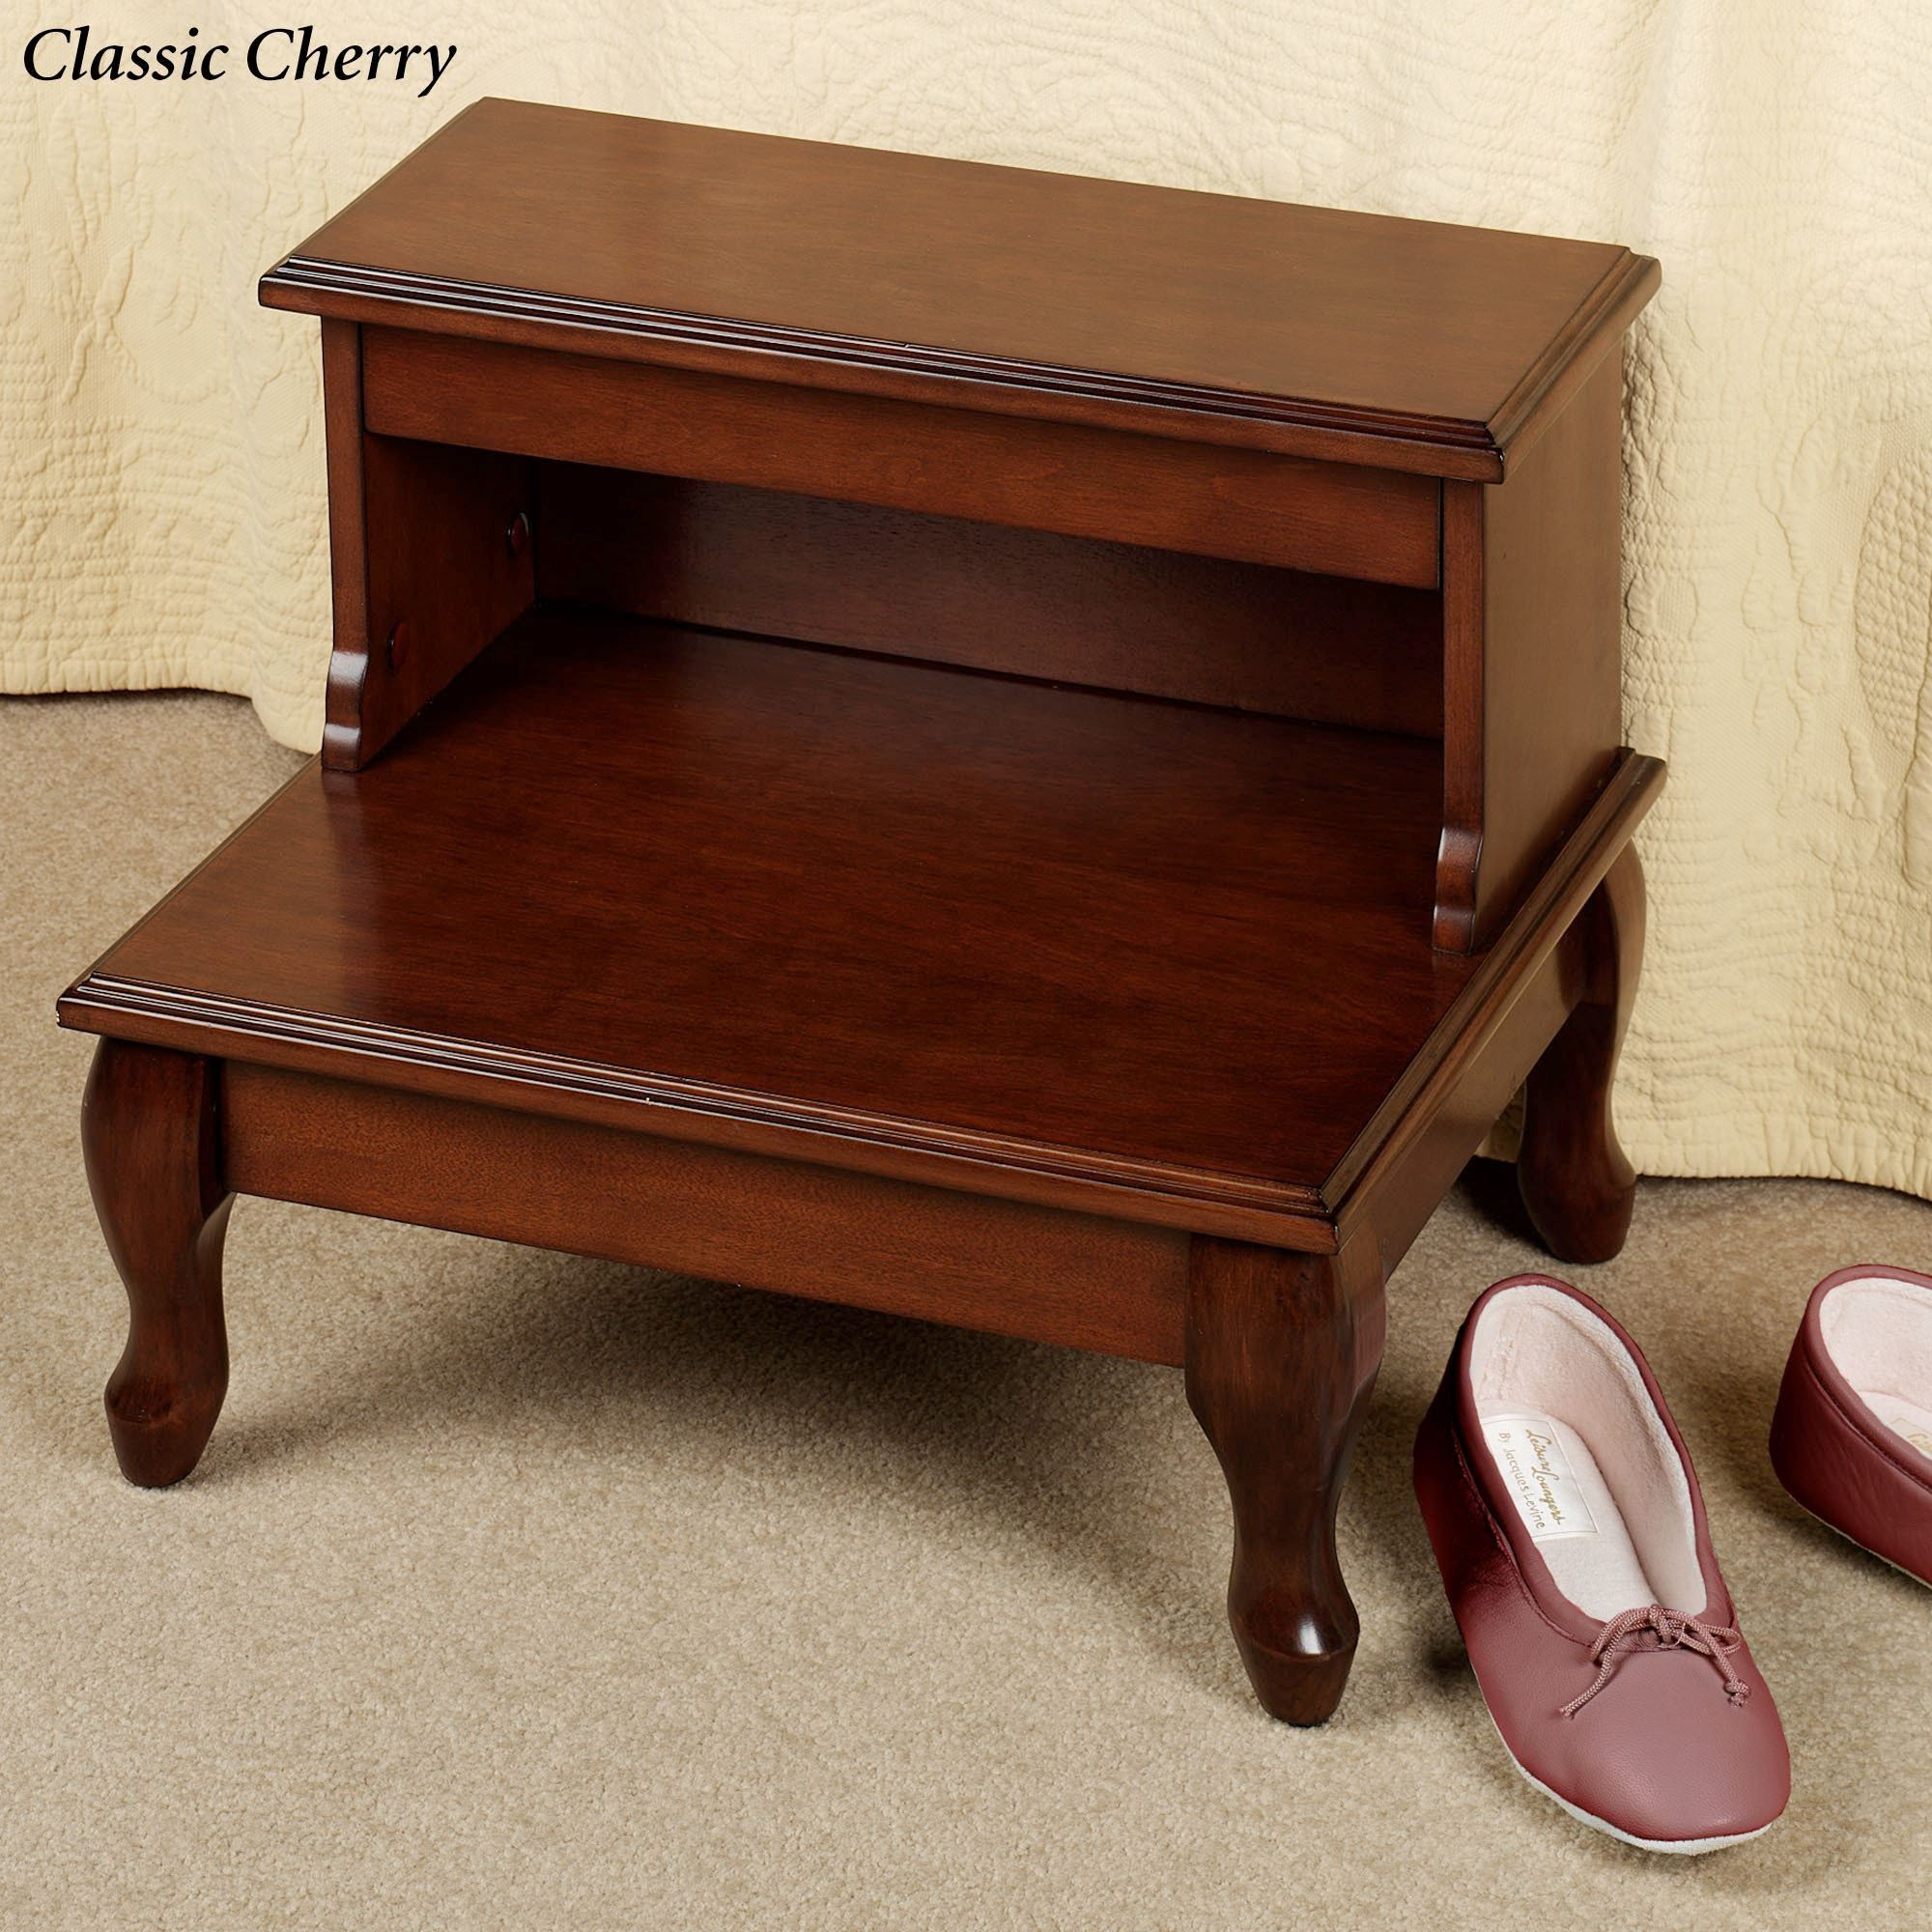 How Bed Step Stool Can Increase Your Profit Bed Step Stool Bed